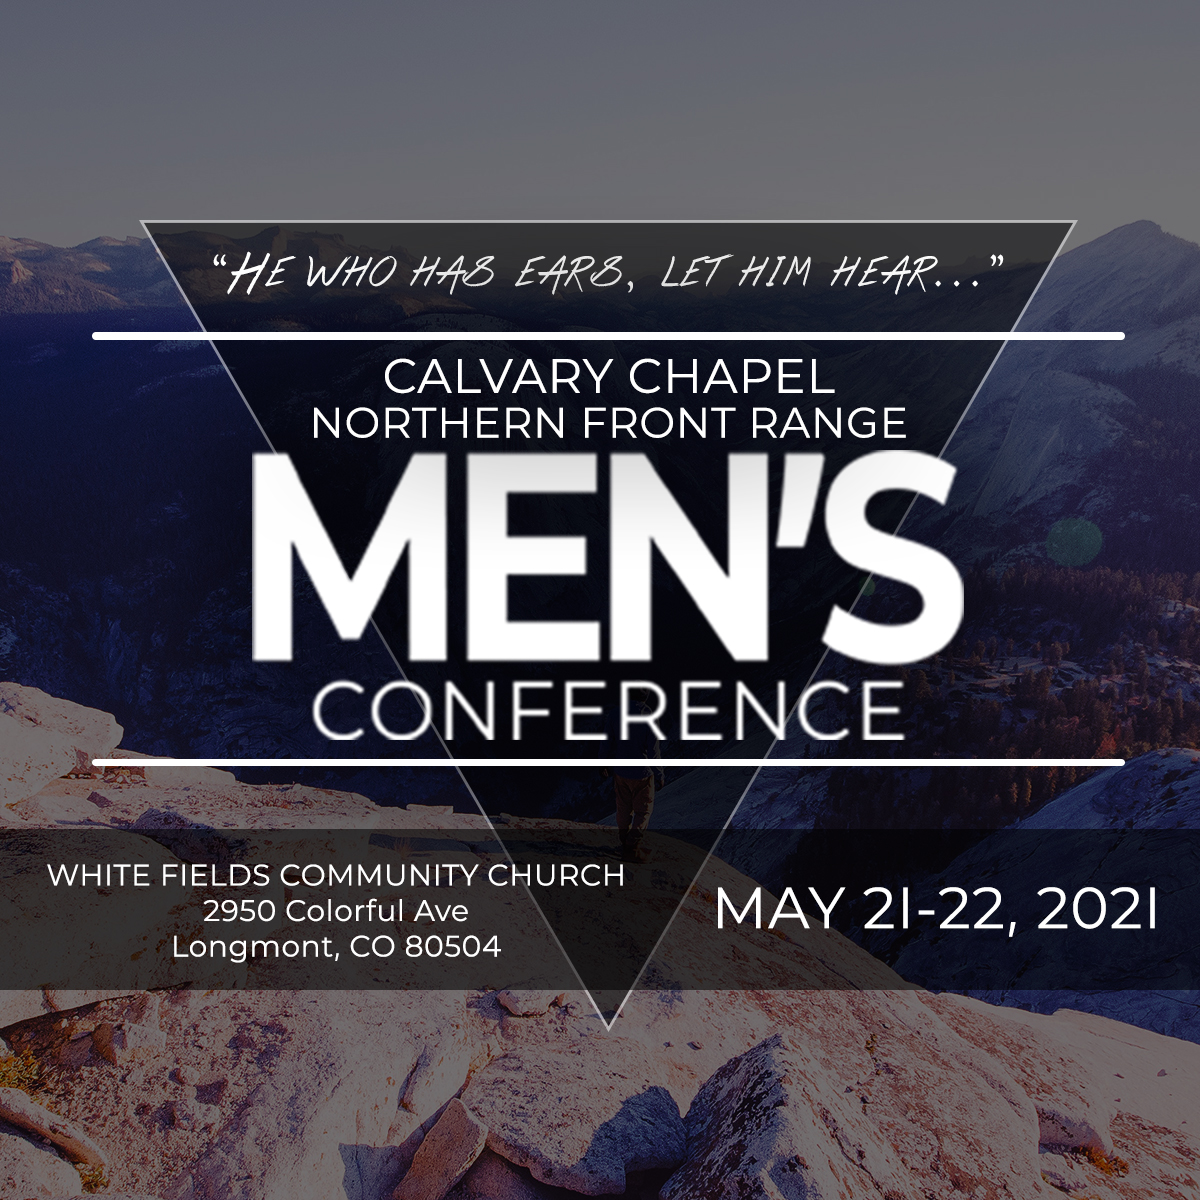 Northern Front Range Men's Conference May 21–22, 2021